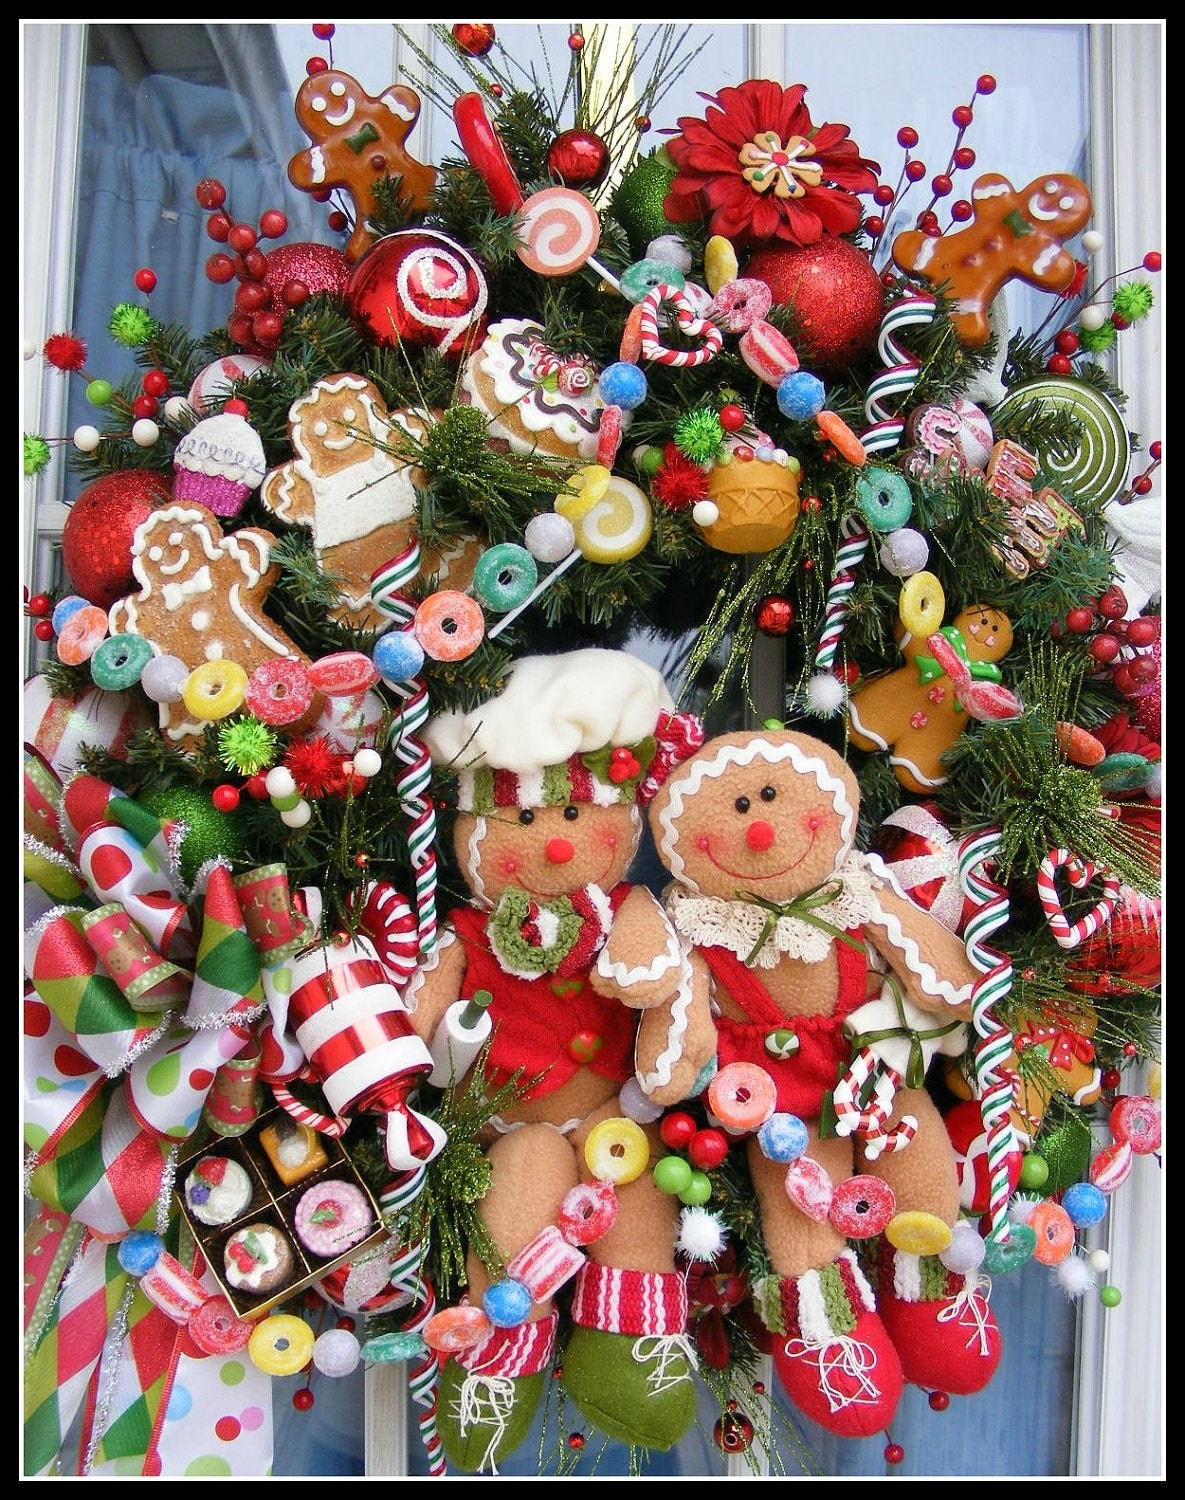 Custom Made Santa Christmas Wreath or Gingerbread Holiday Wreath of your choice with FREE US Shipping